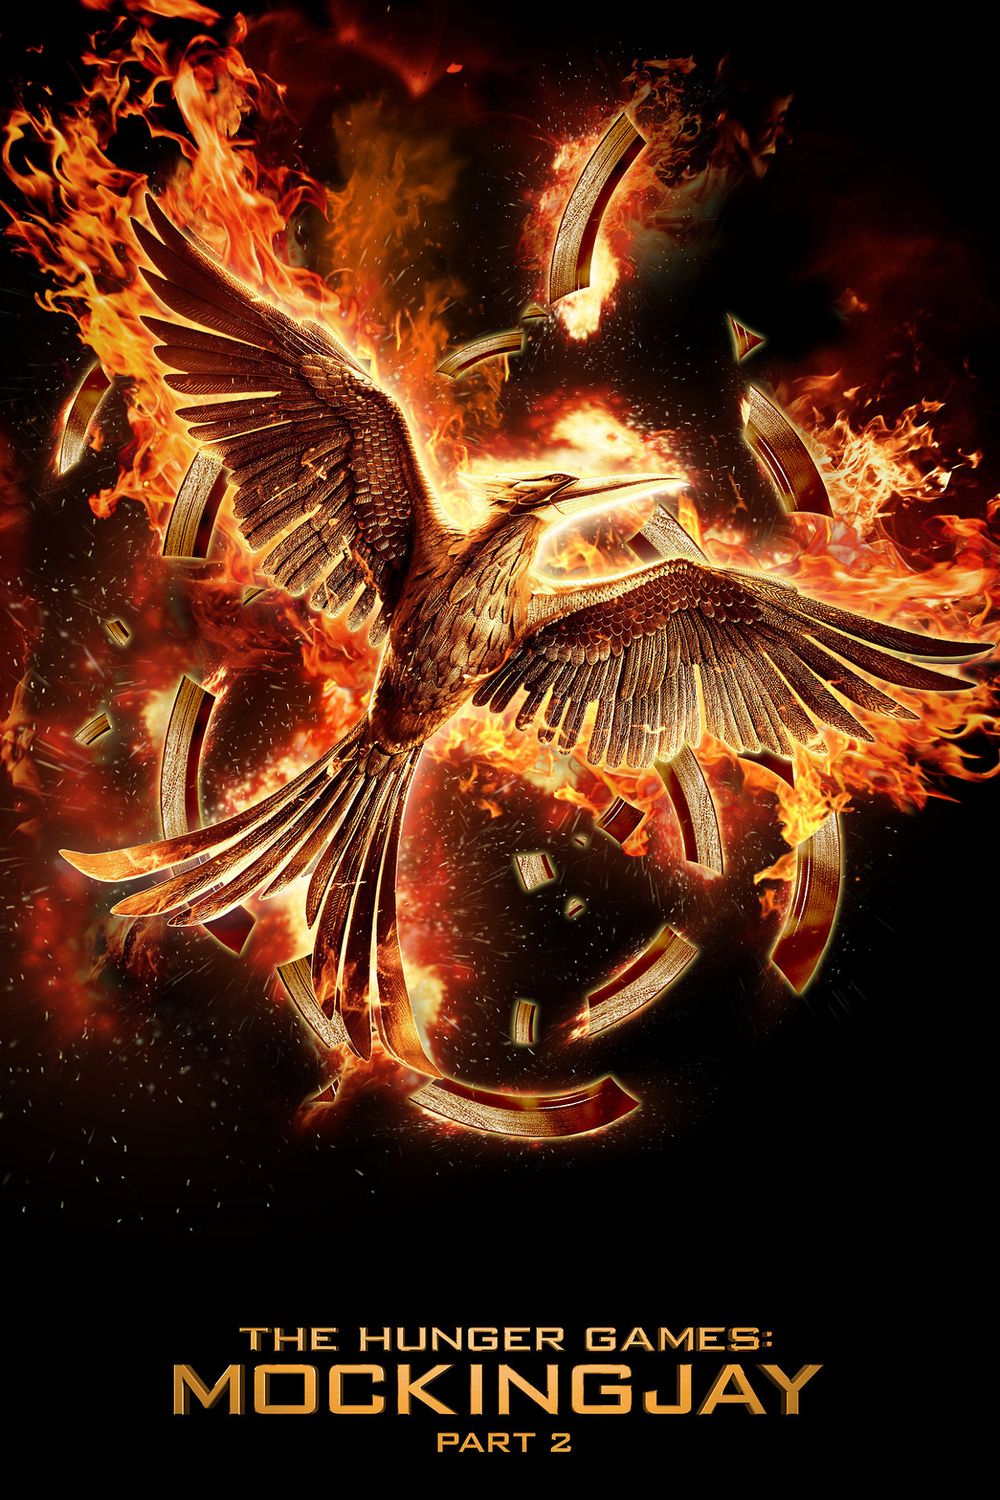 Hunger games part 2 release date in Brisbane